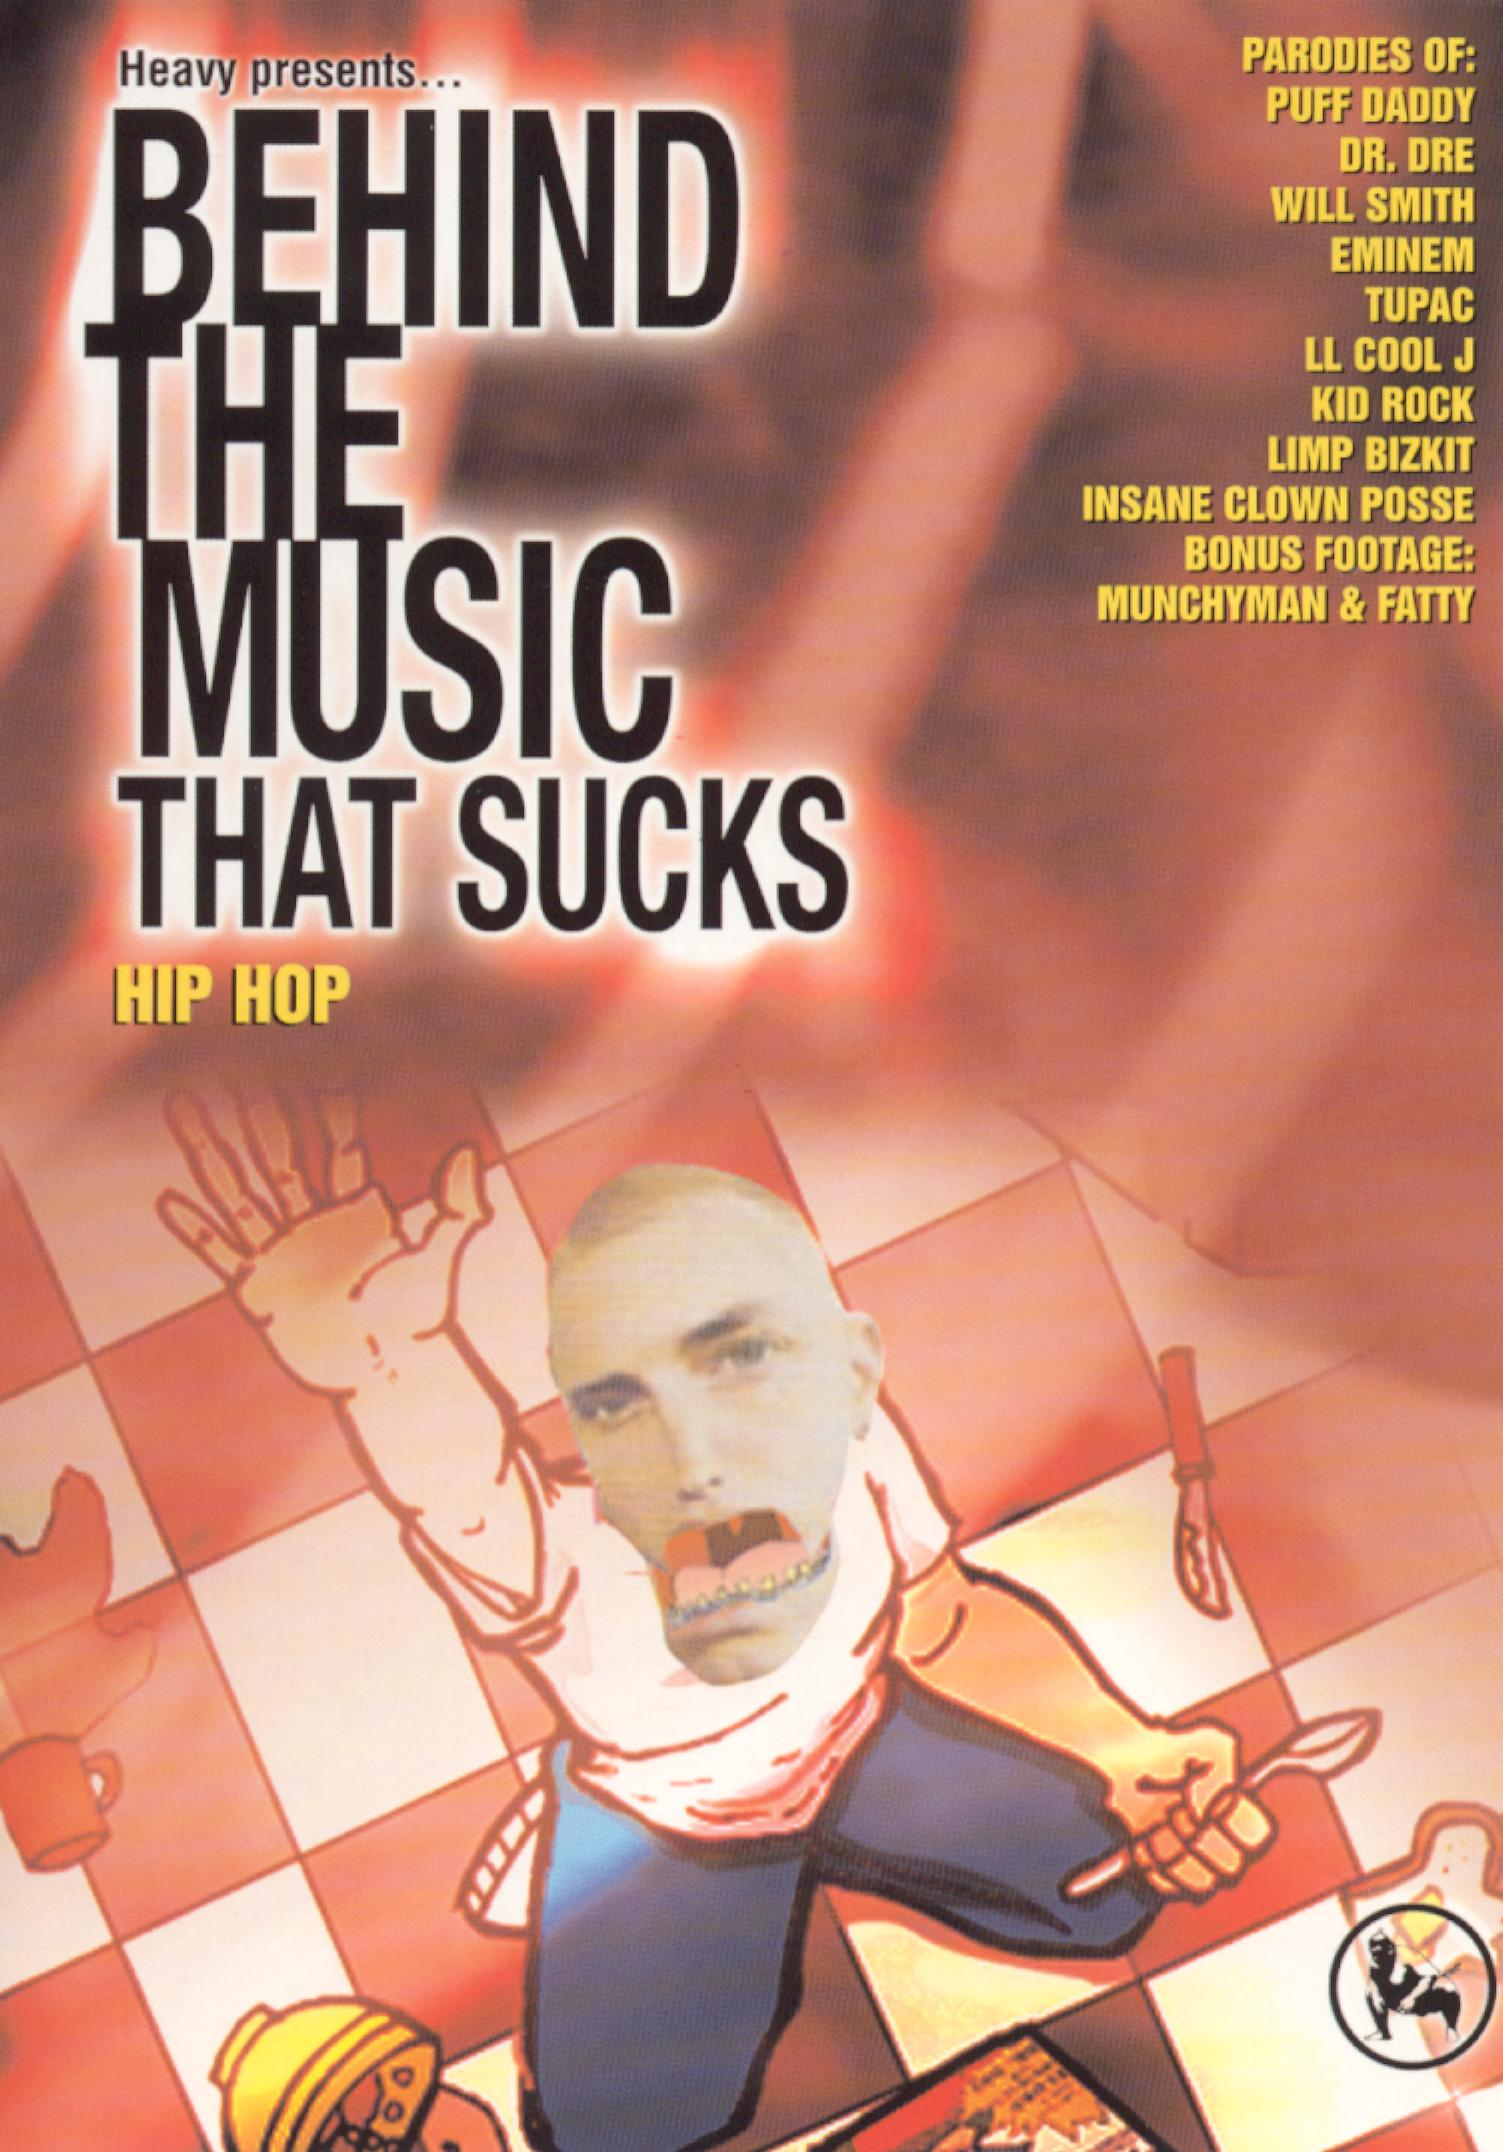 Behind the Music that Sucks, Vol. 6: Hip Hop